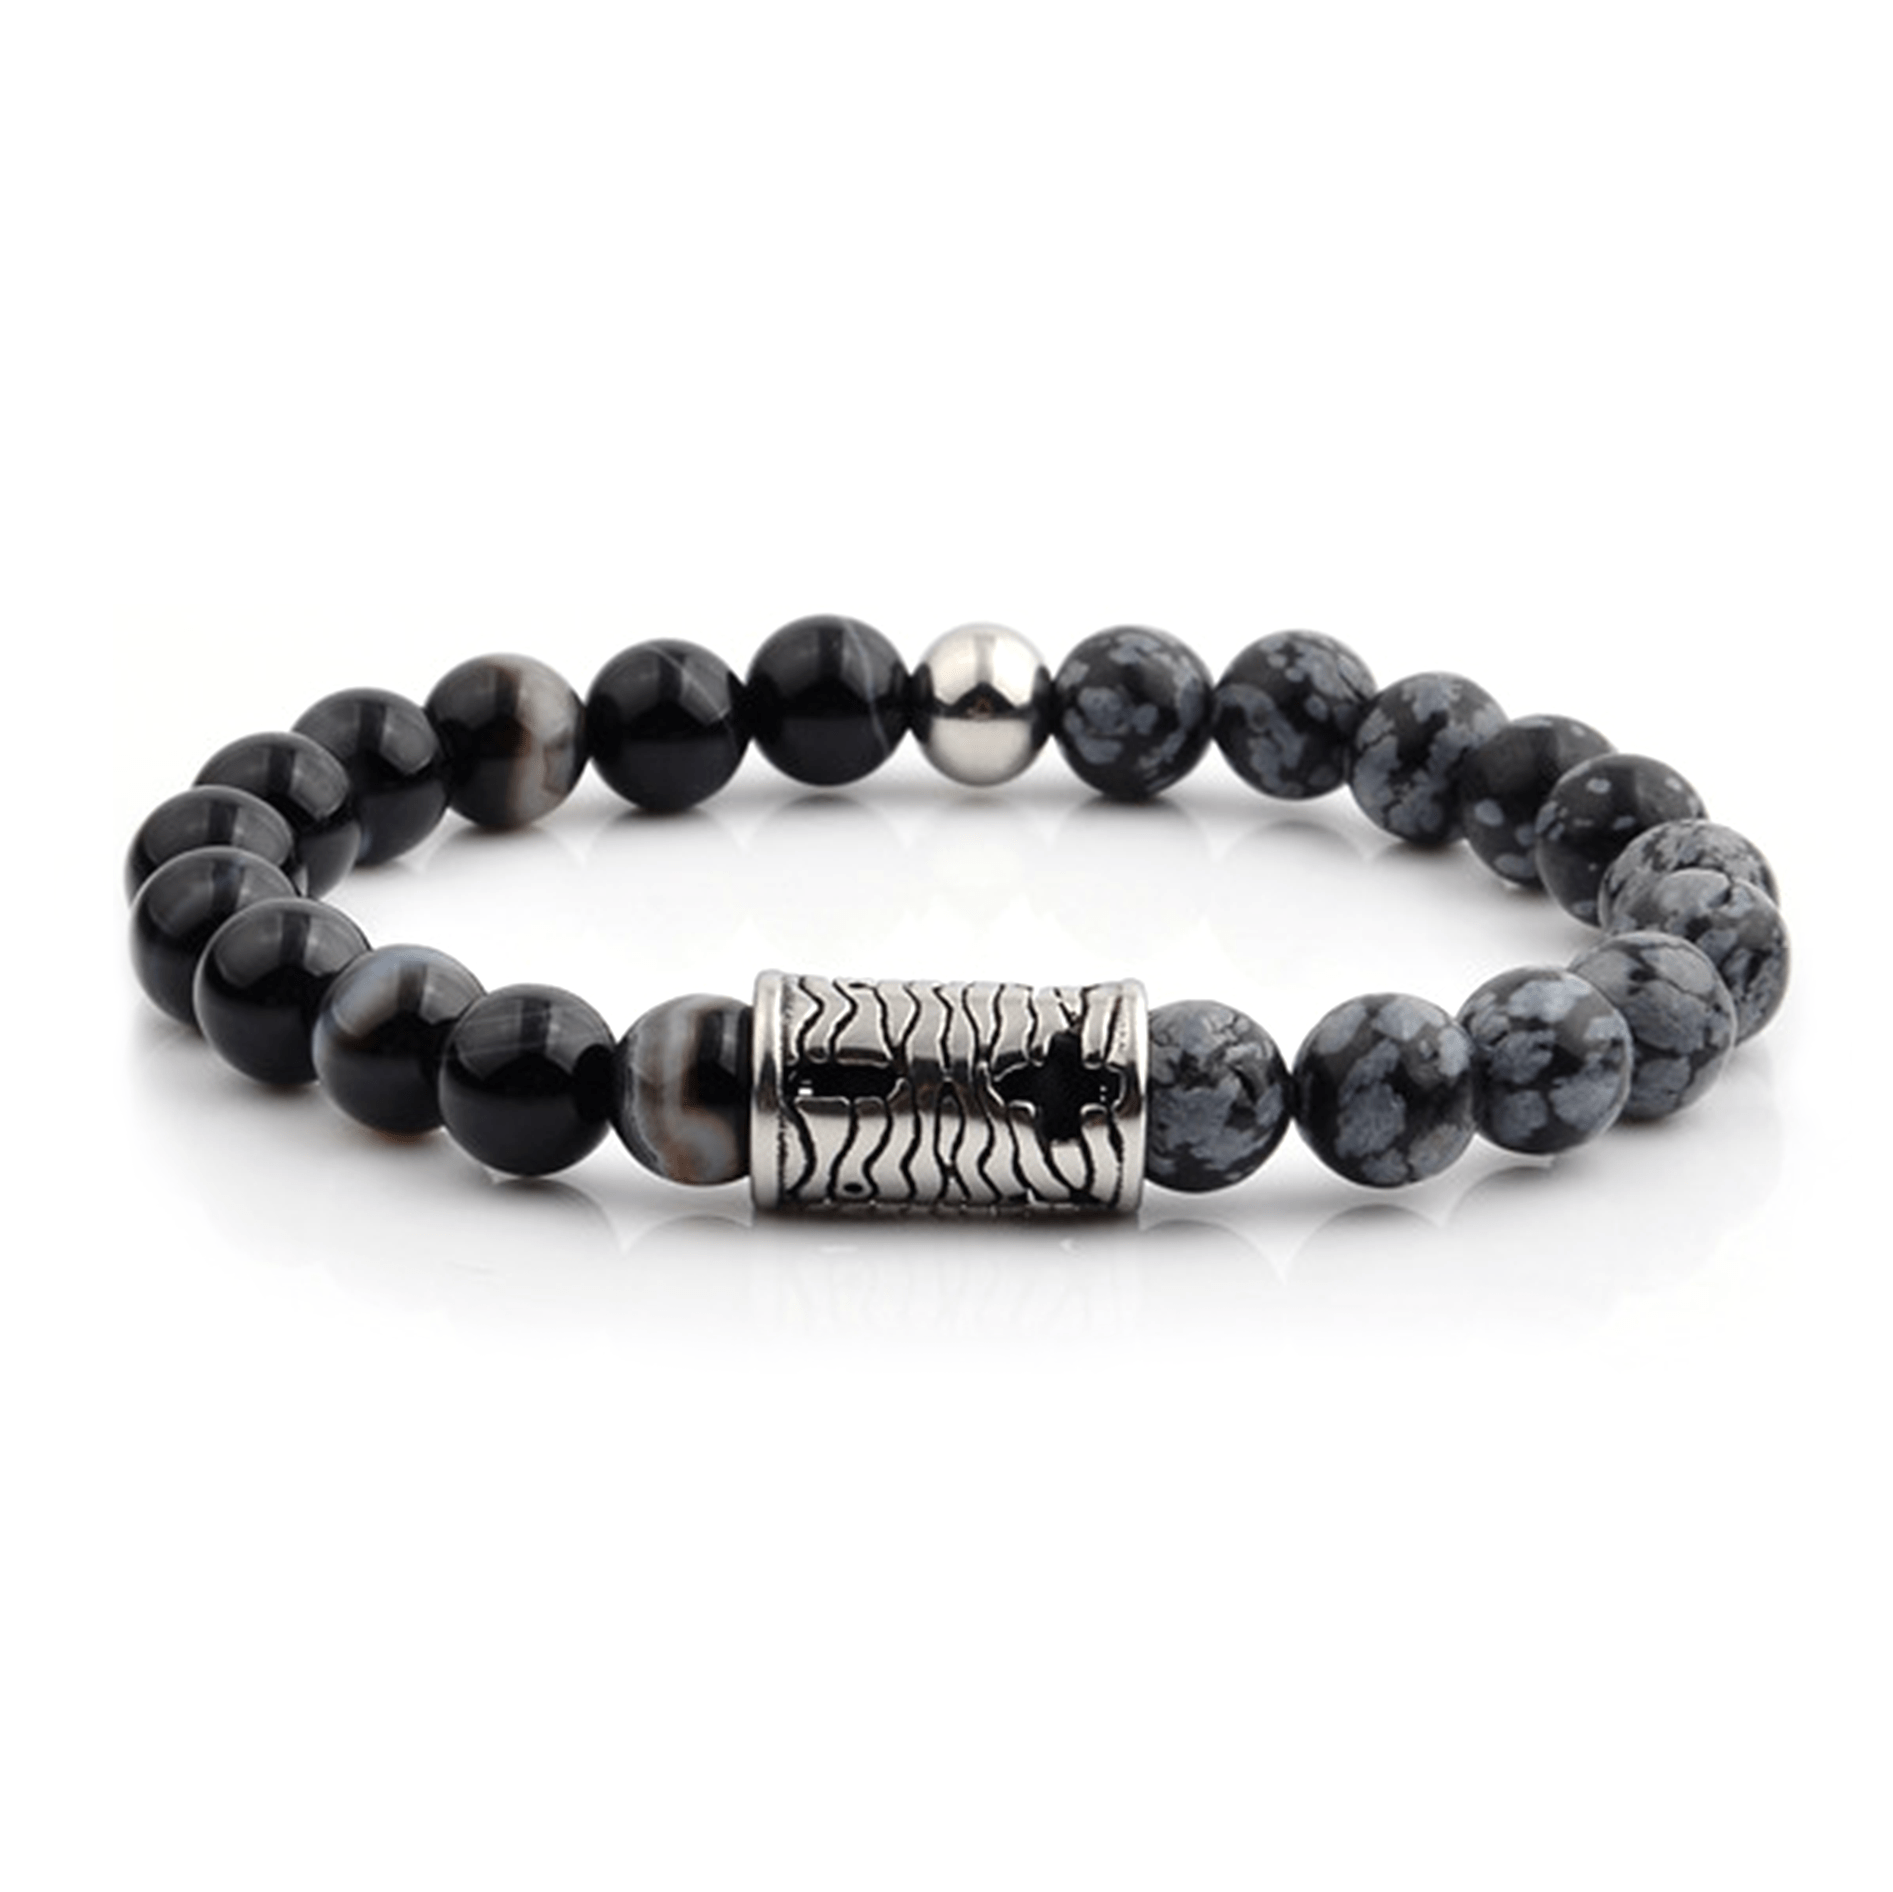 HYLIZO X Series 012 - Black Marble Beaded bracelet with 316 Stainless Steel Engraving +/-